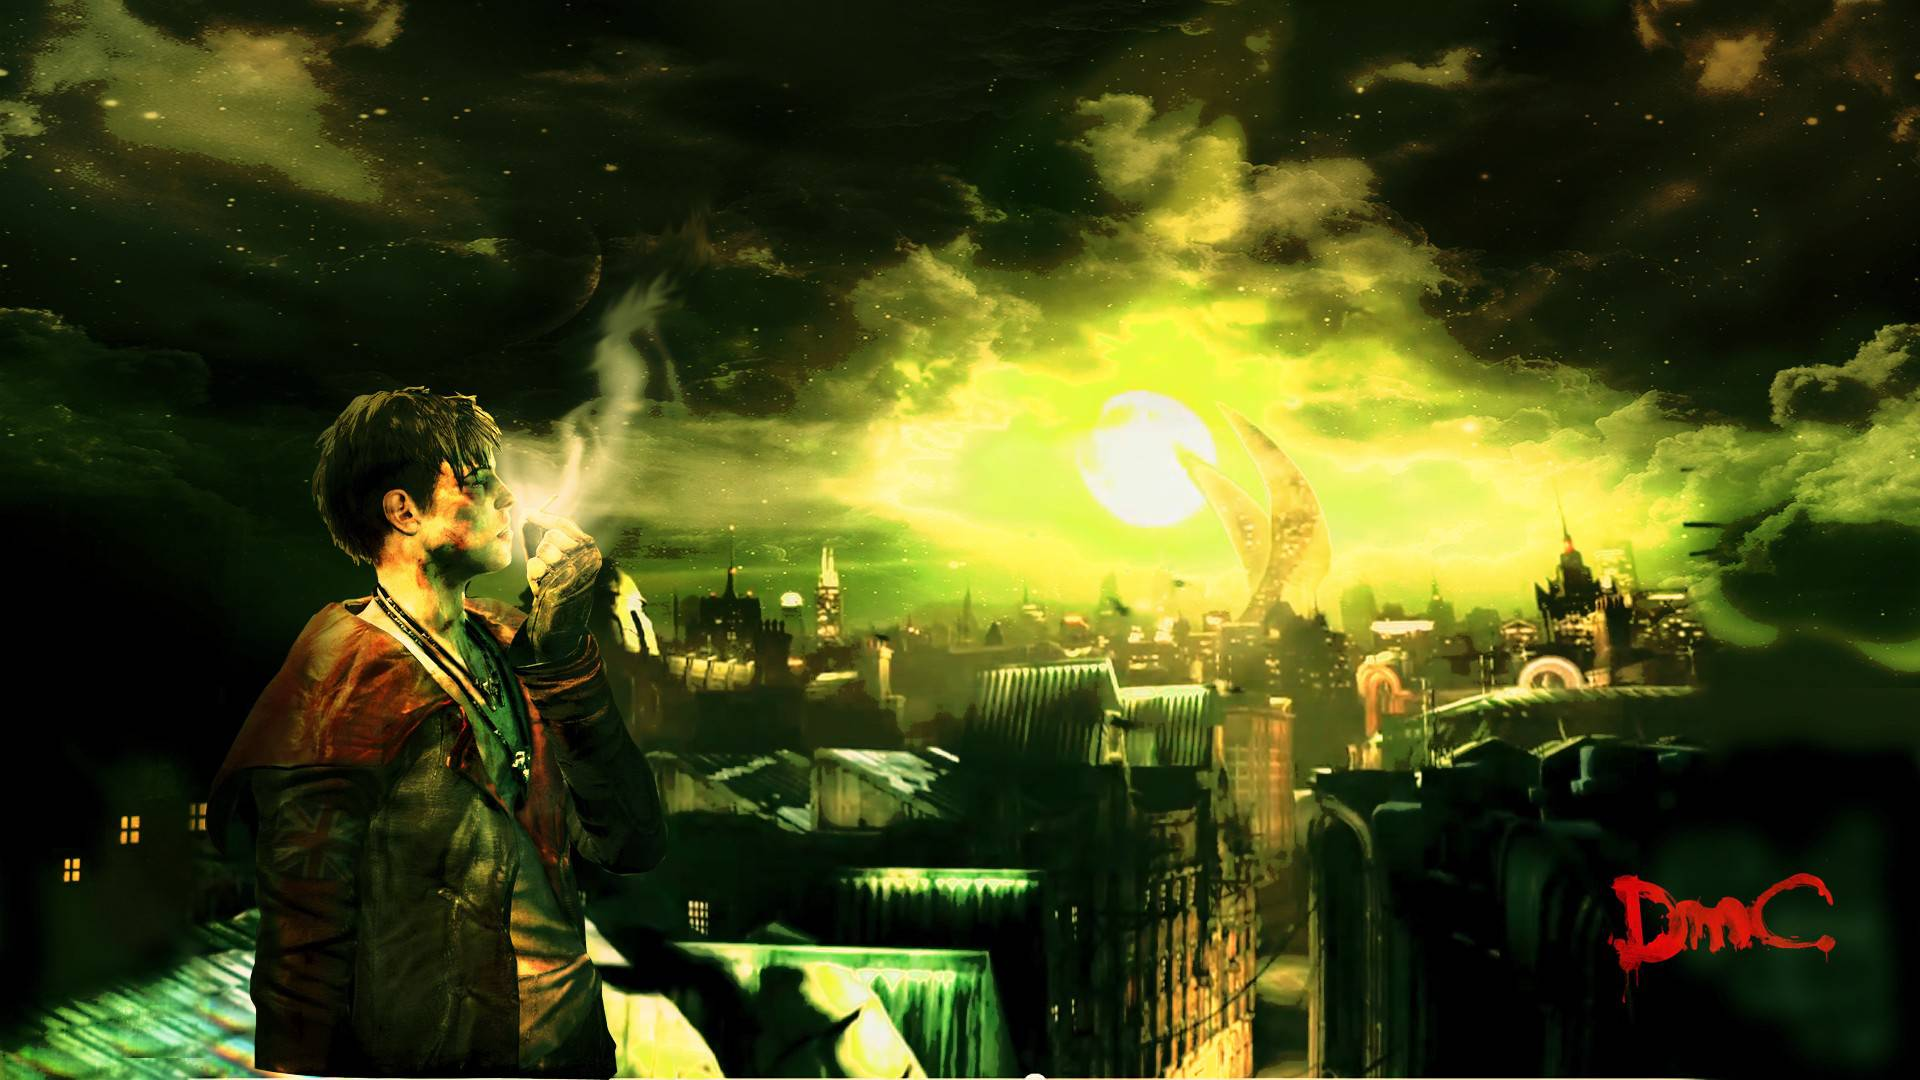 wallpapers devil may cry - photo #26